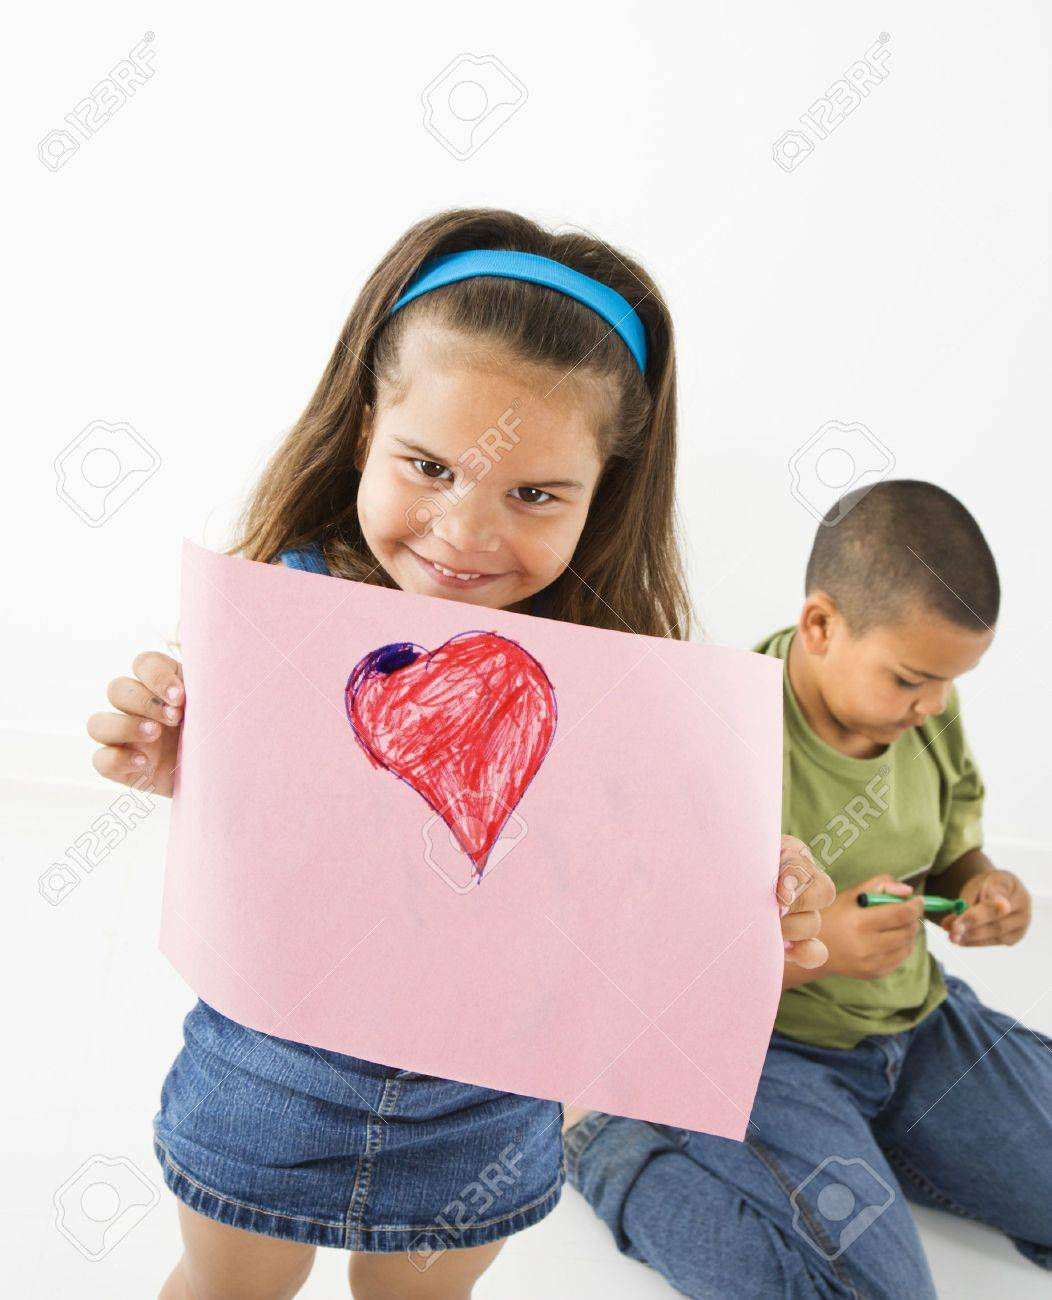 Young girl showing off drawing of heart while boy sits behind her. Stock Photo - 3589262